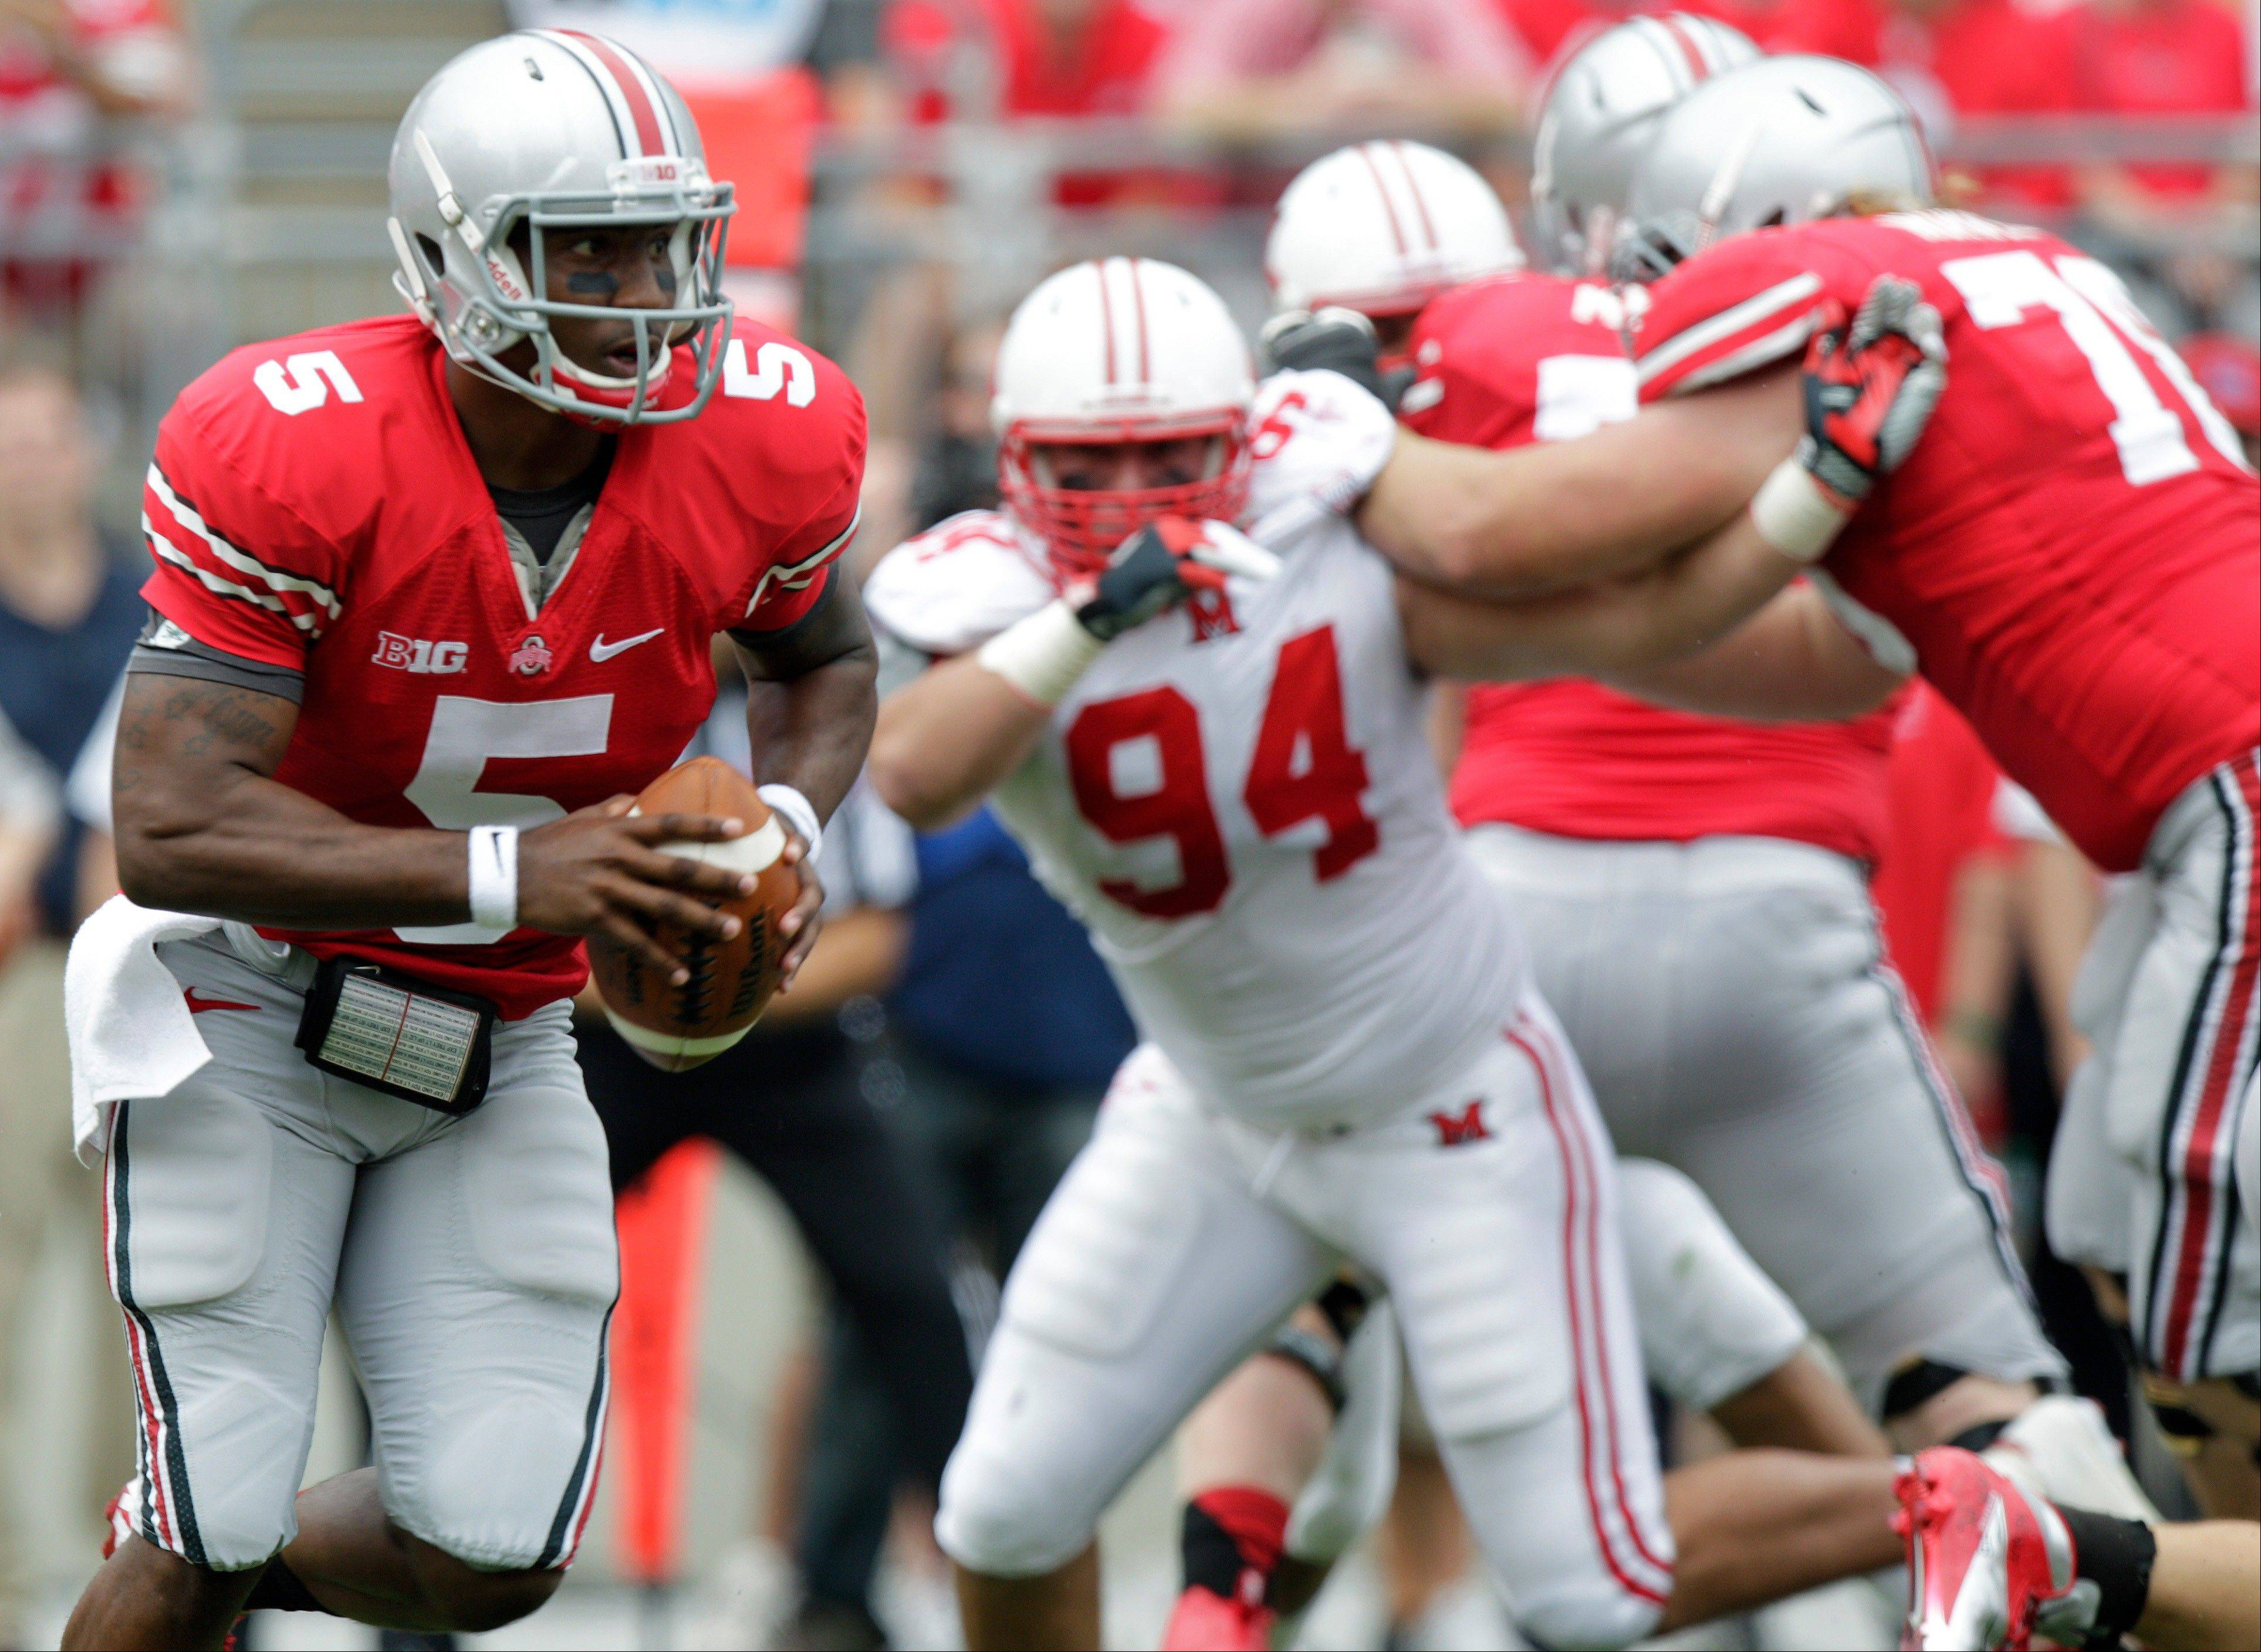 Ohio State�s Braxton Miller, left, runs an option play against Miami of Ohio during the first quarter of an NCAA college football game Saturday in Columbus, Ohio. Miller rushed for 161 yards, a record for an Ohio State quarterback, and threw for two scores in their 56-10 win.